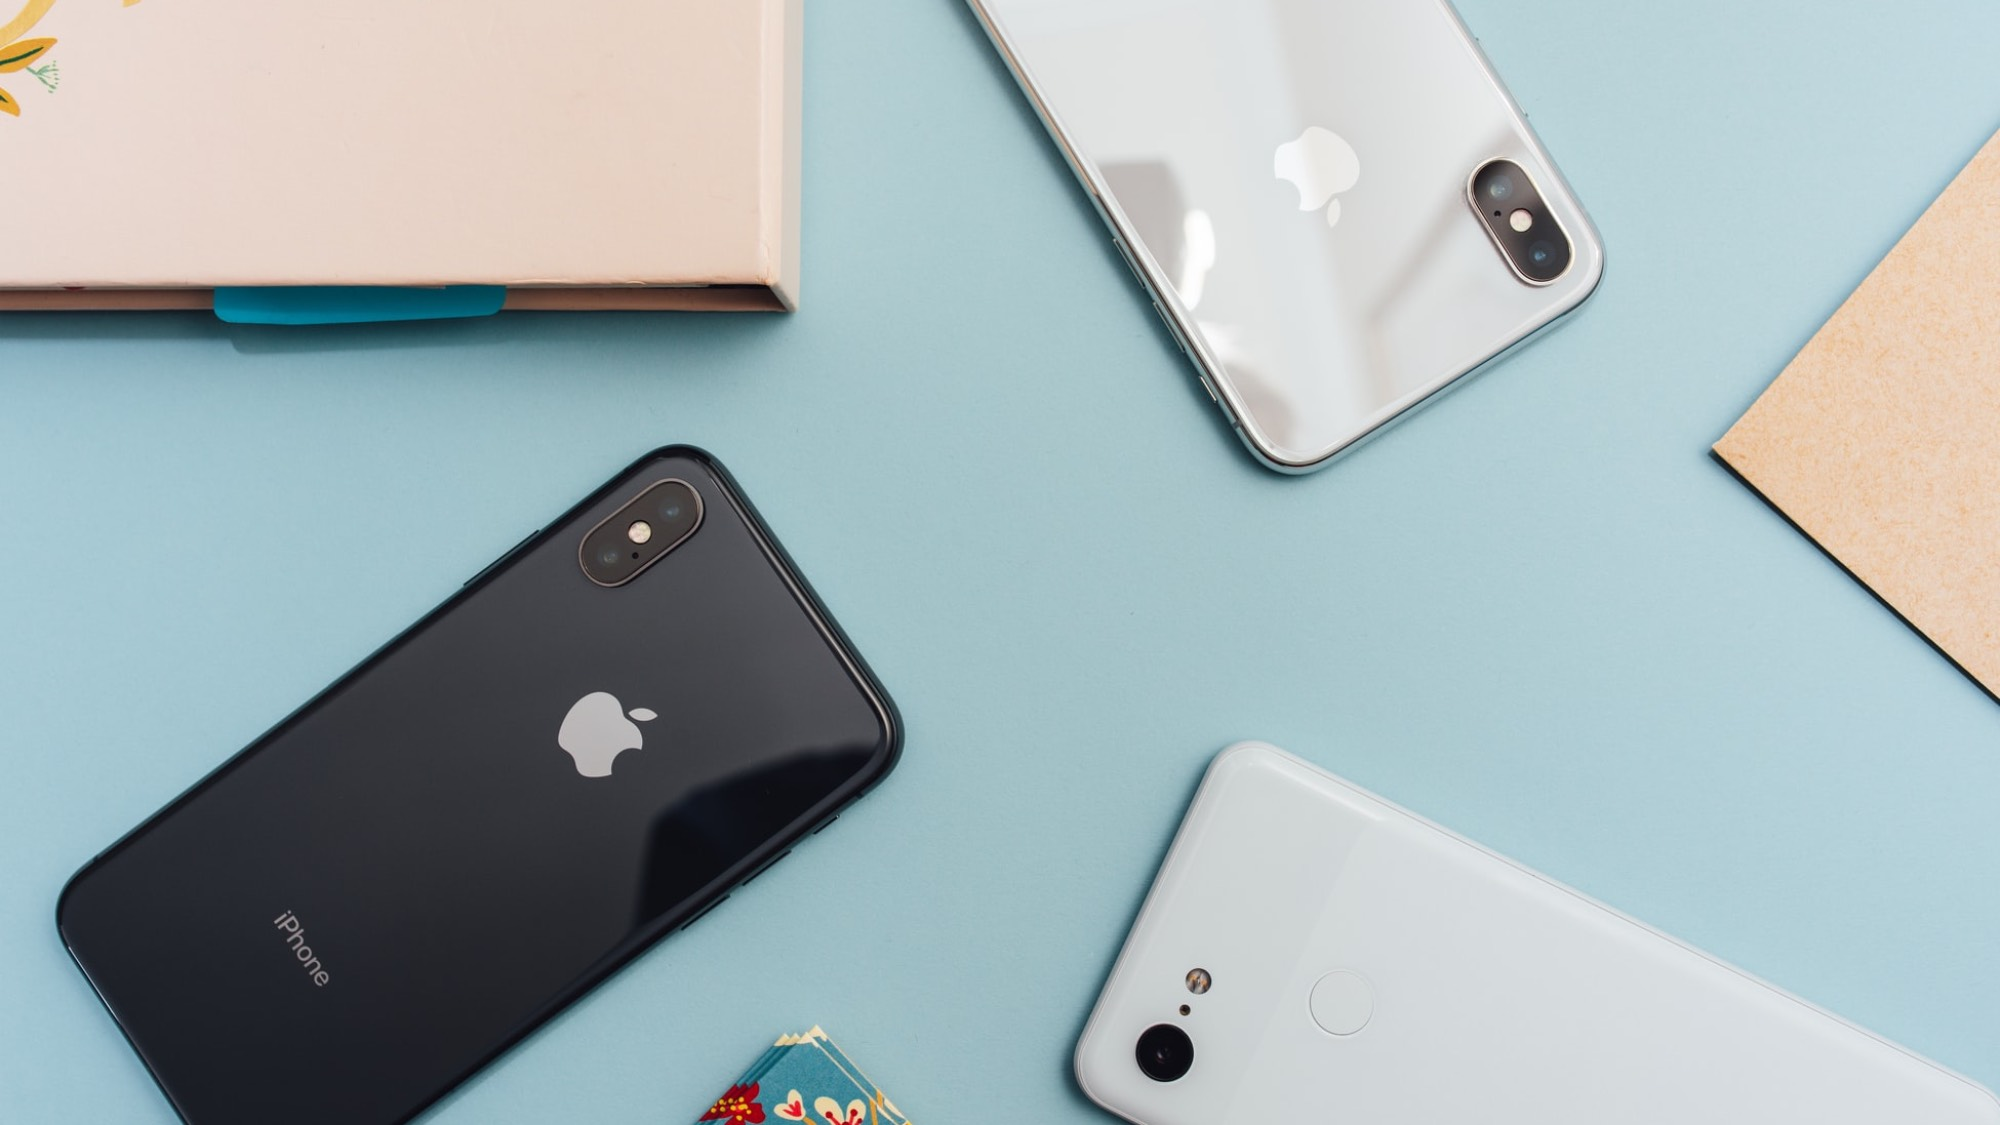 iPhones on a table